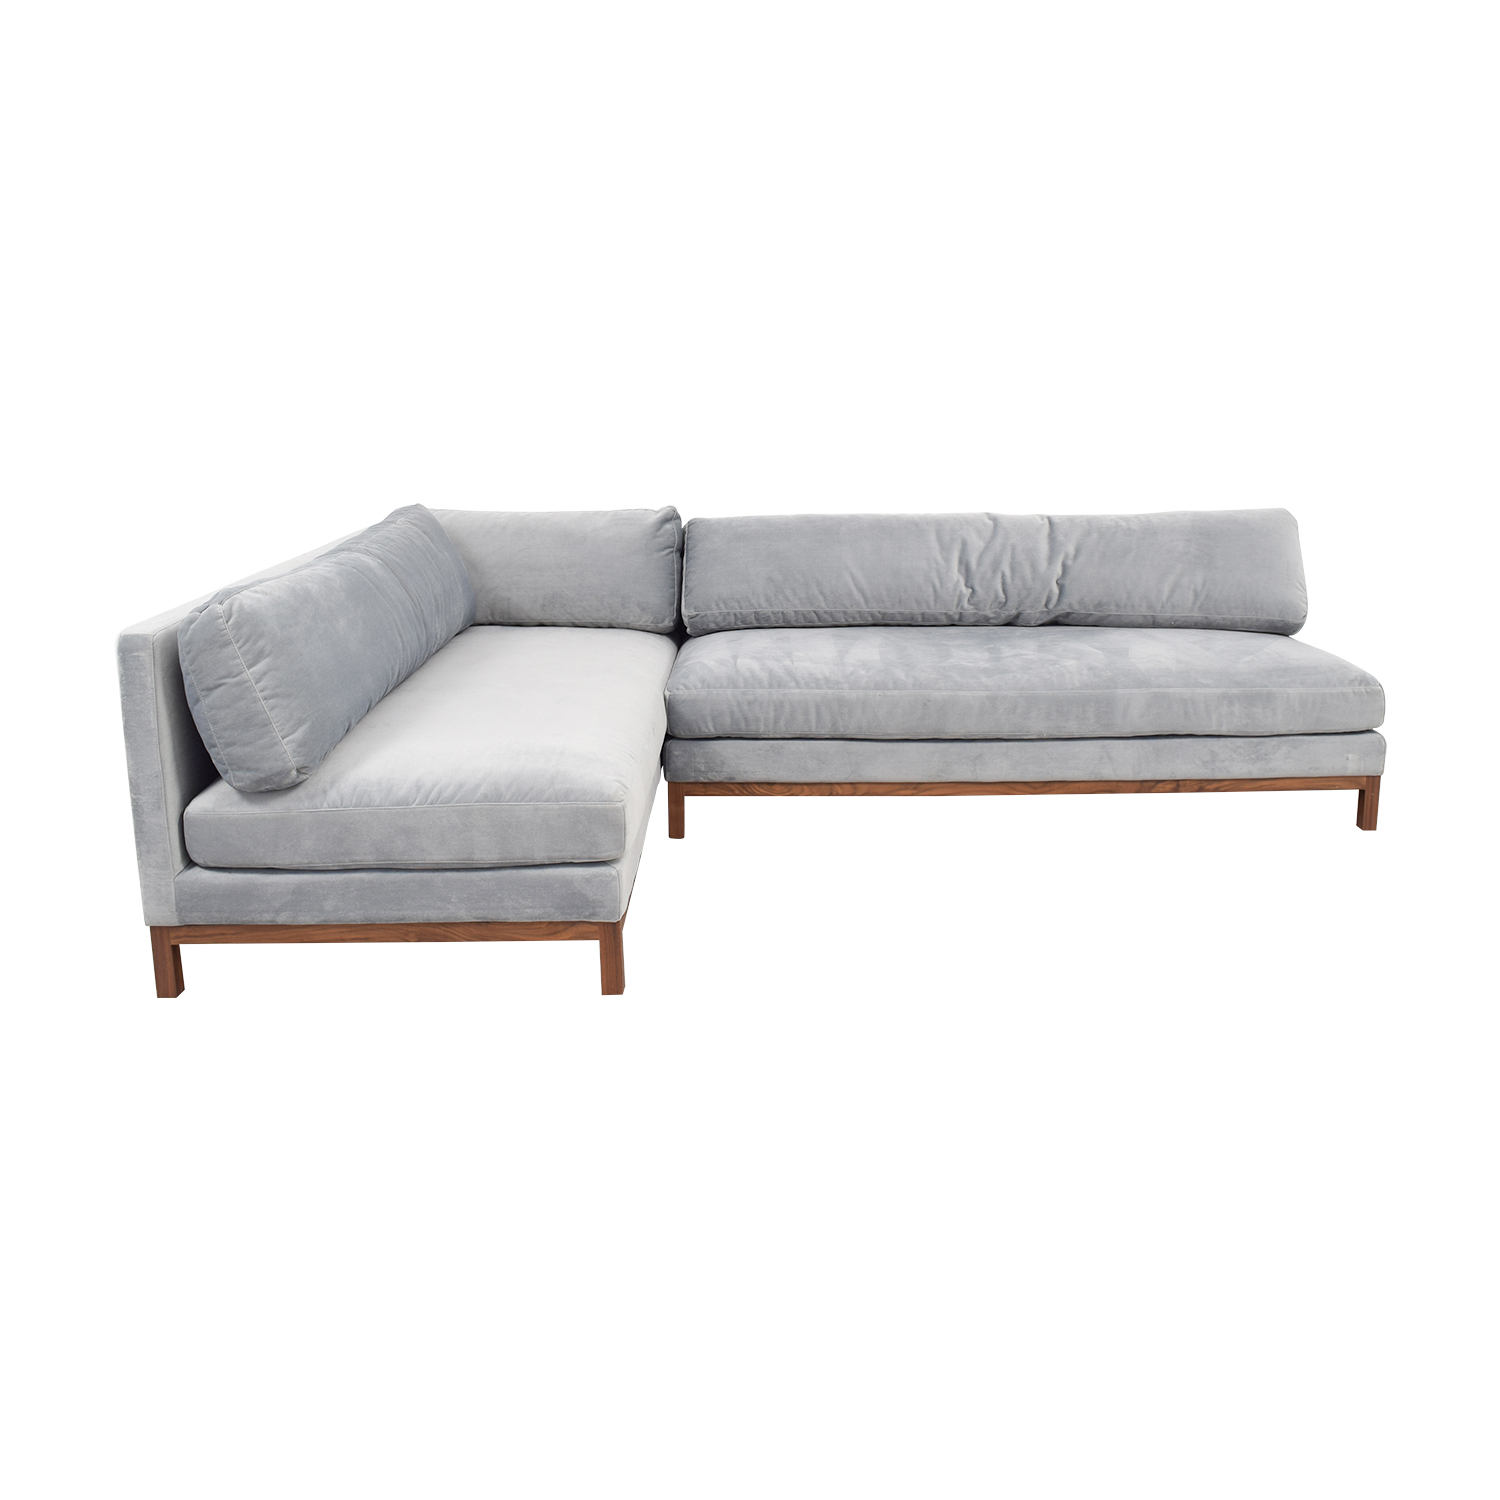 Buy Jasper Gray Short Deep Left Chaise Sectional Sofa ...